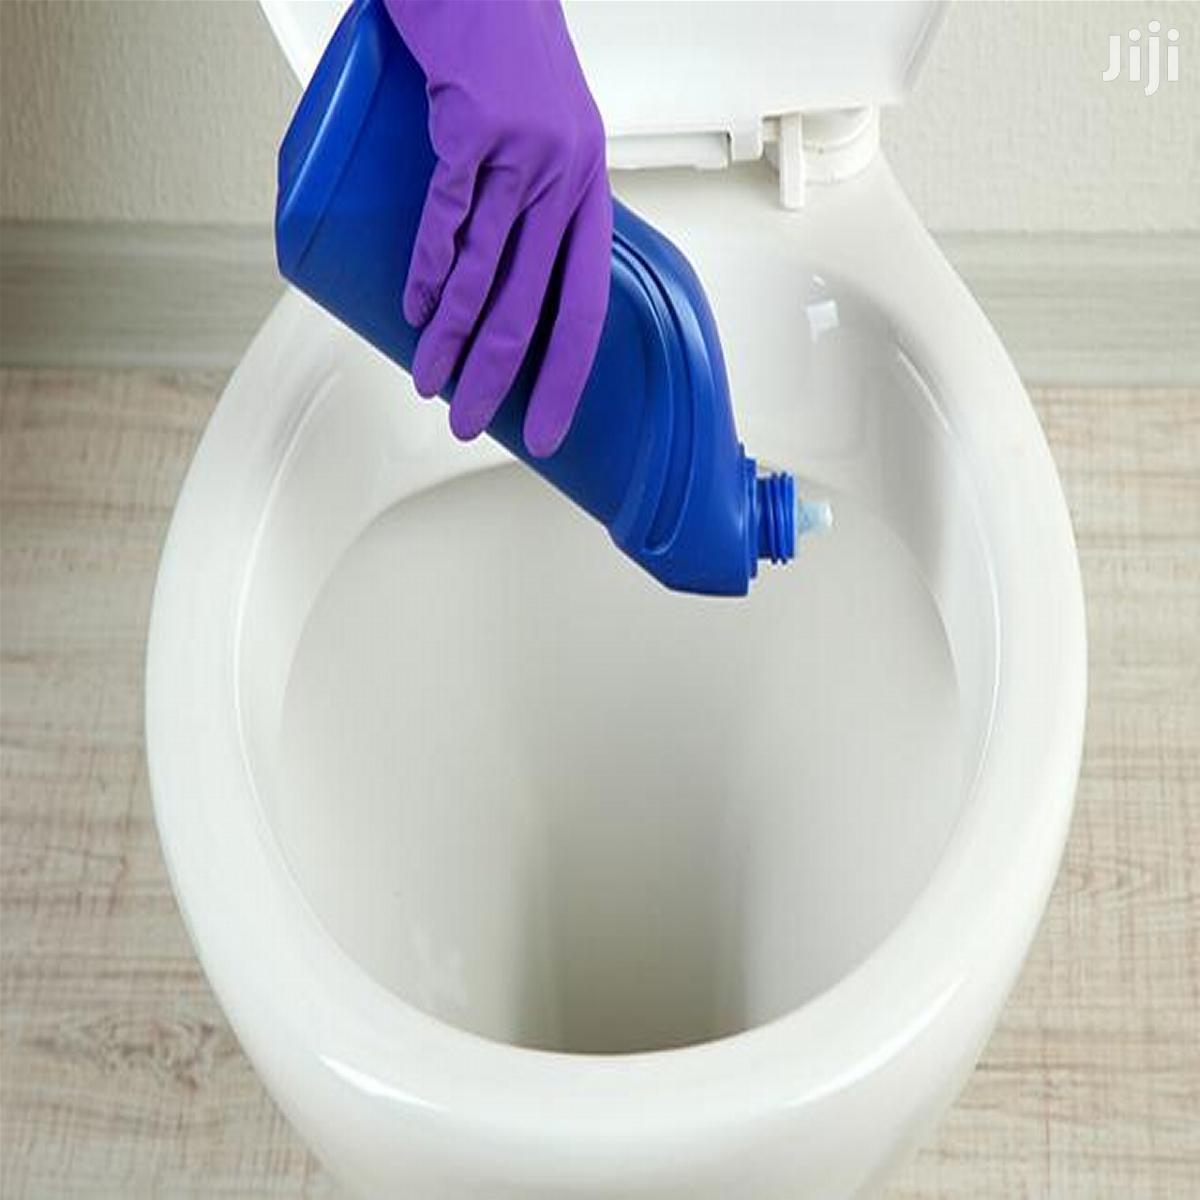 Toilet Bowl Cleaner (HARPIC) Training